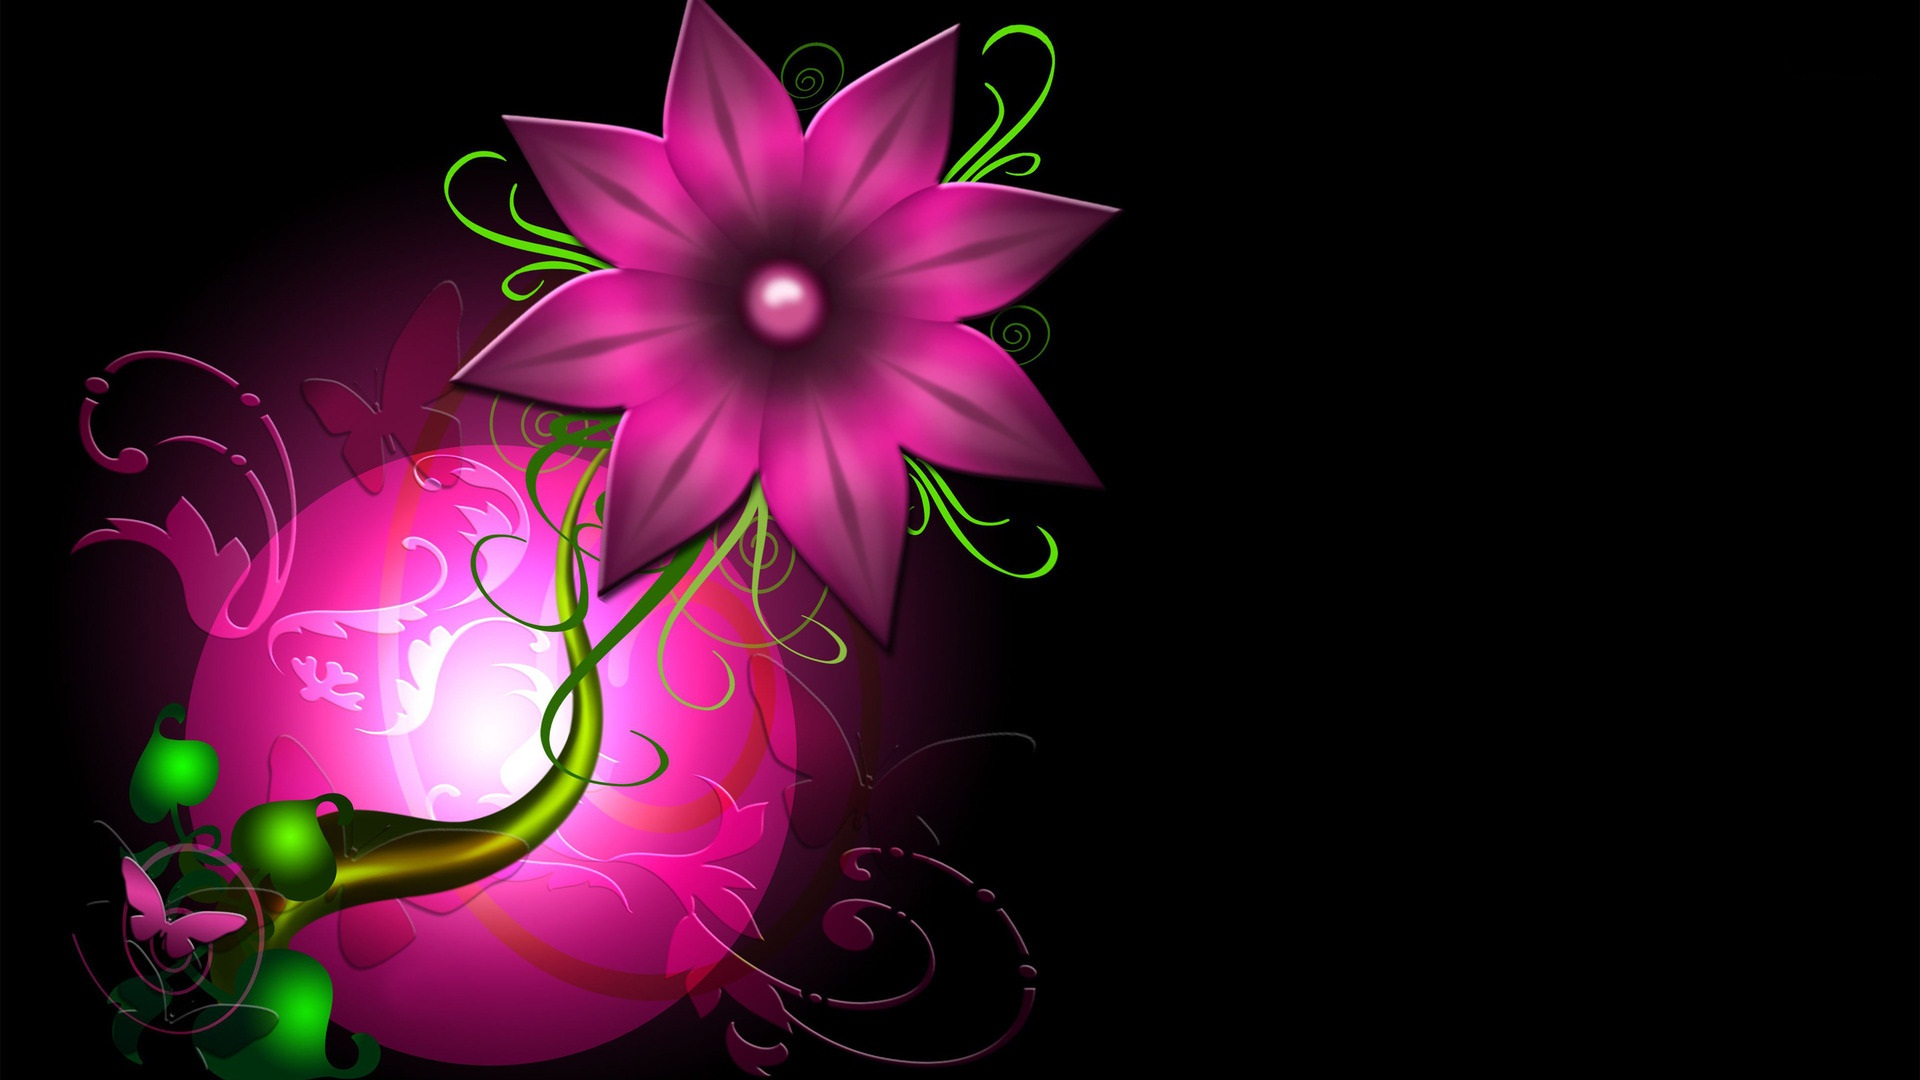 Beautiful Abstract Pink Flower Wallpaper 1920x1080